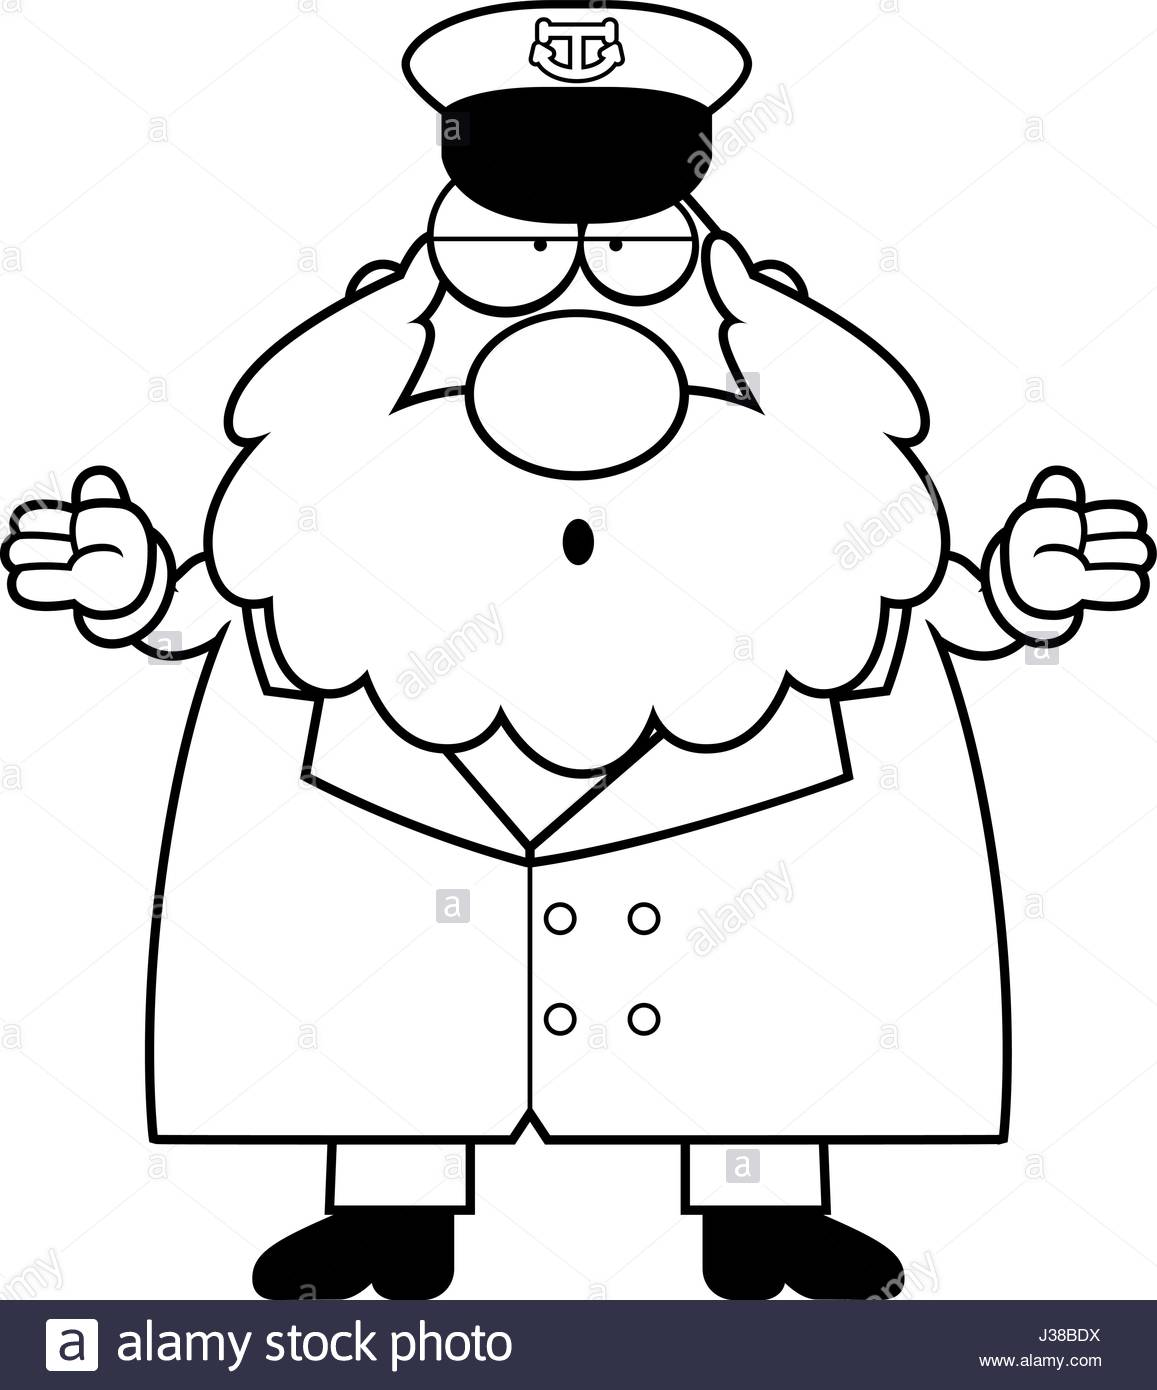 1157x1390 A Cartoon Illustration Of A Sea Captain Looking Confused Stock